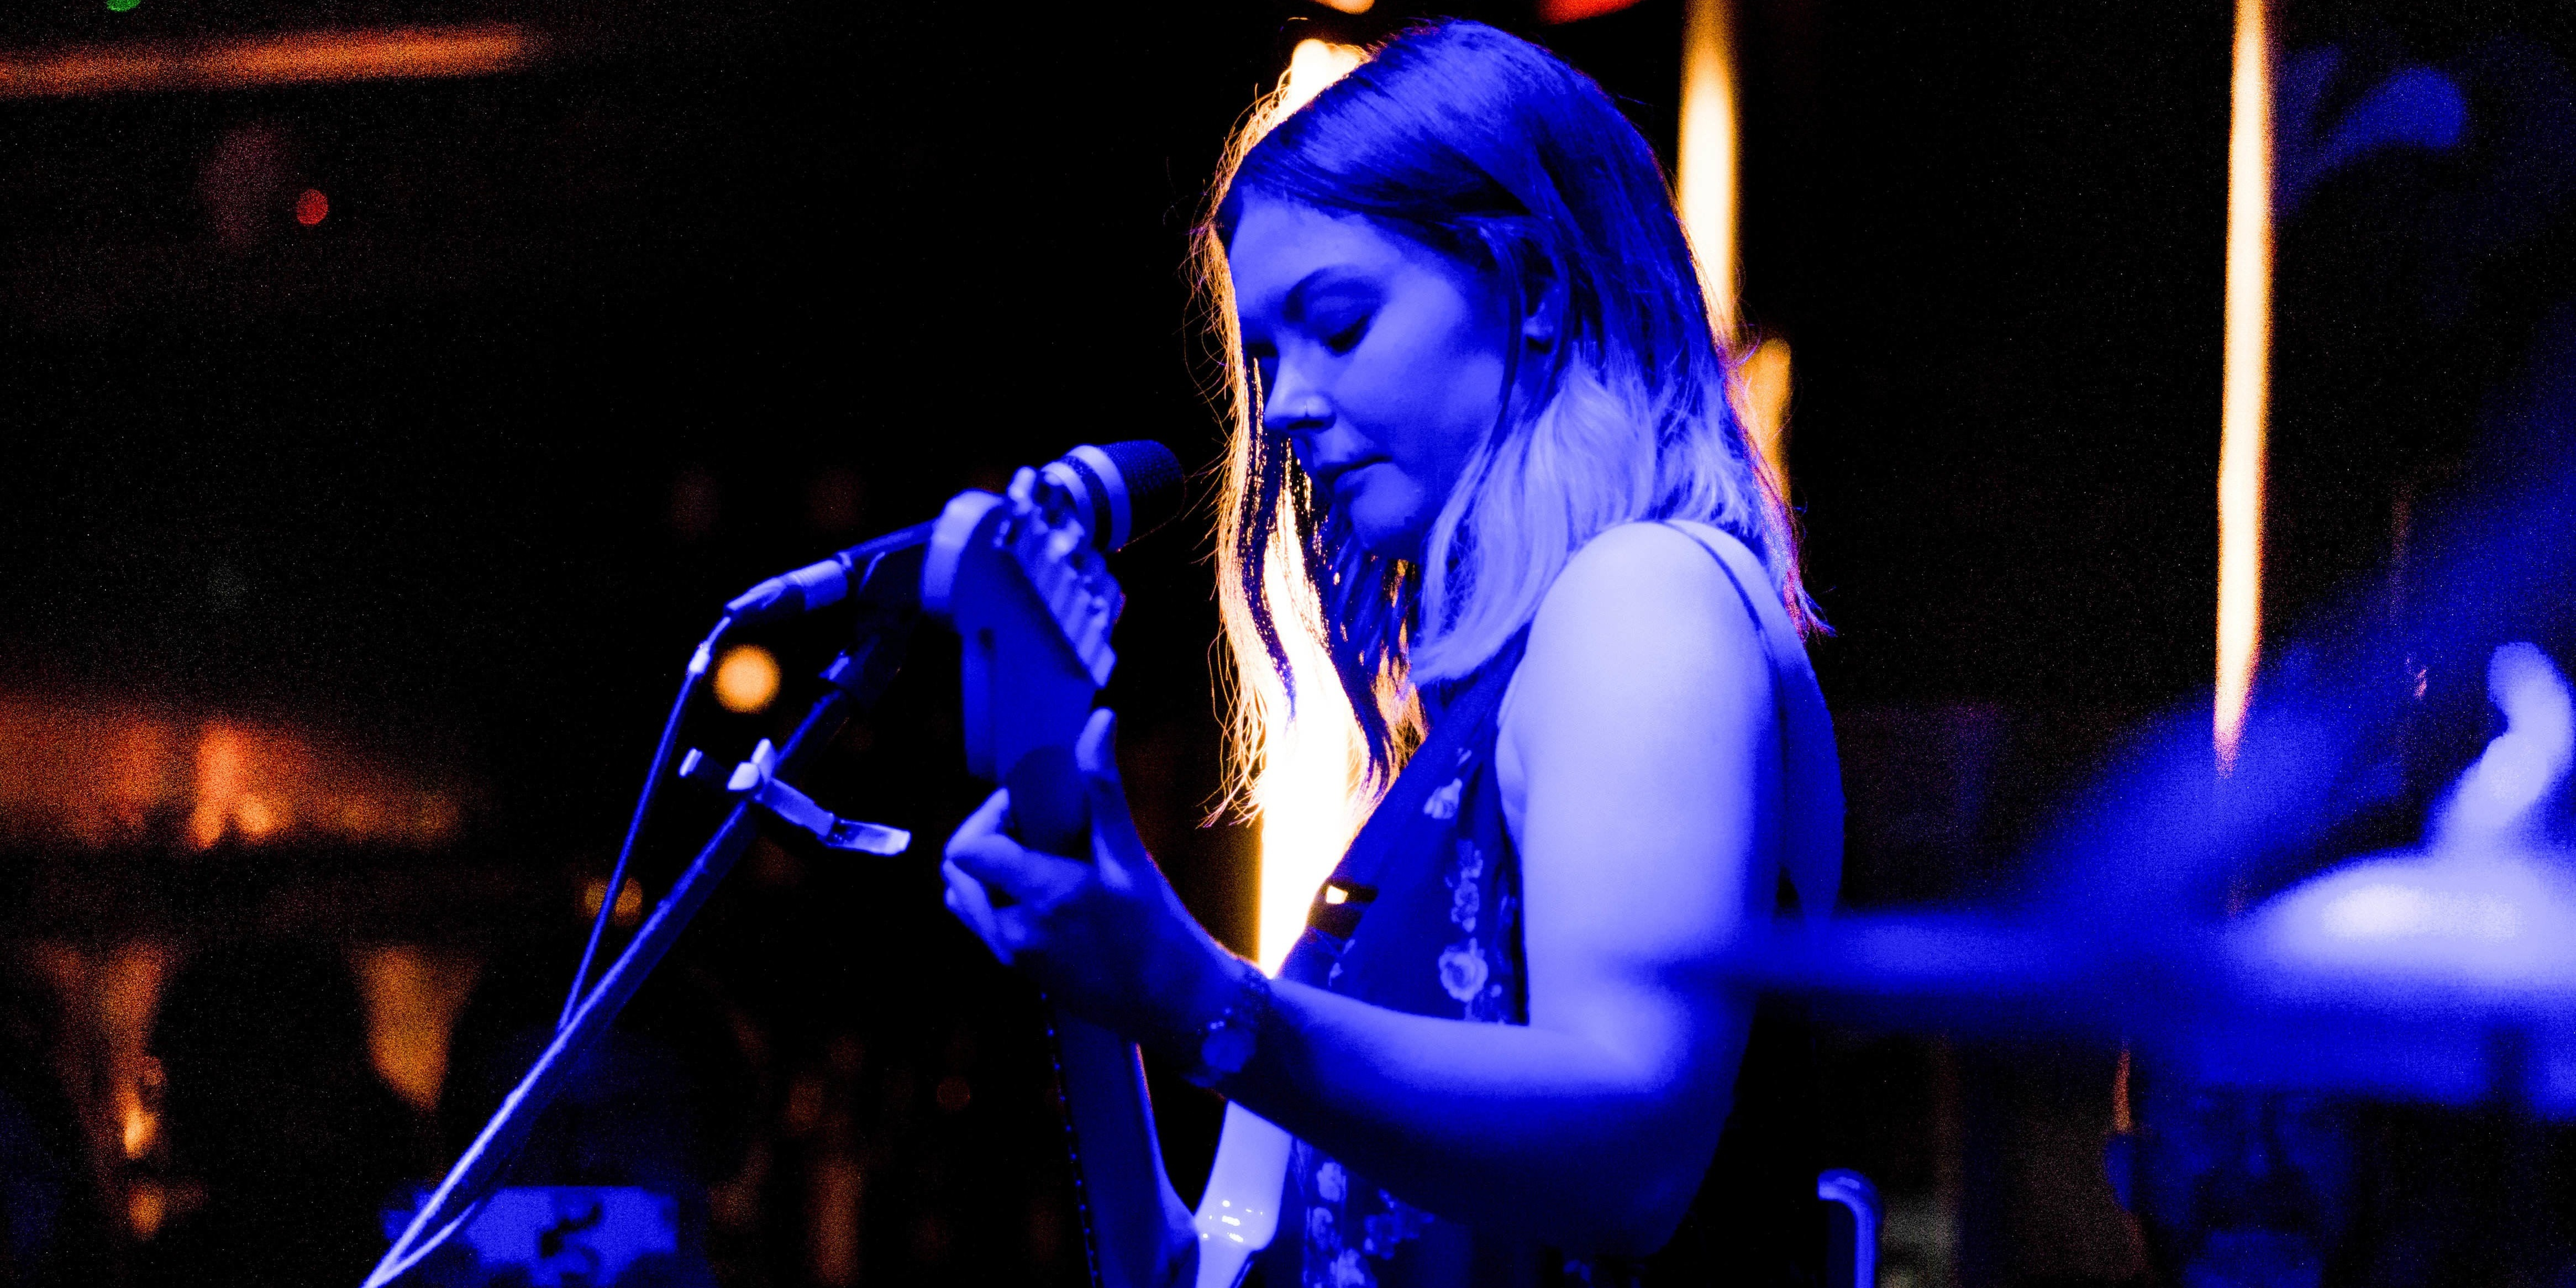 PHOTO GALLERY: Honeyblood puts on a raucous showing in their Singapore debut